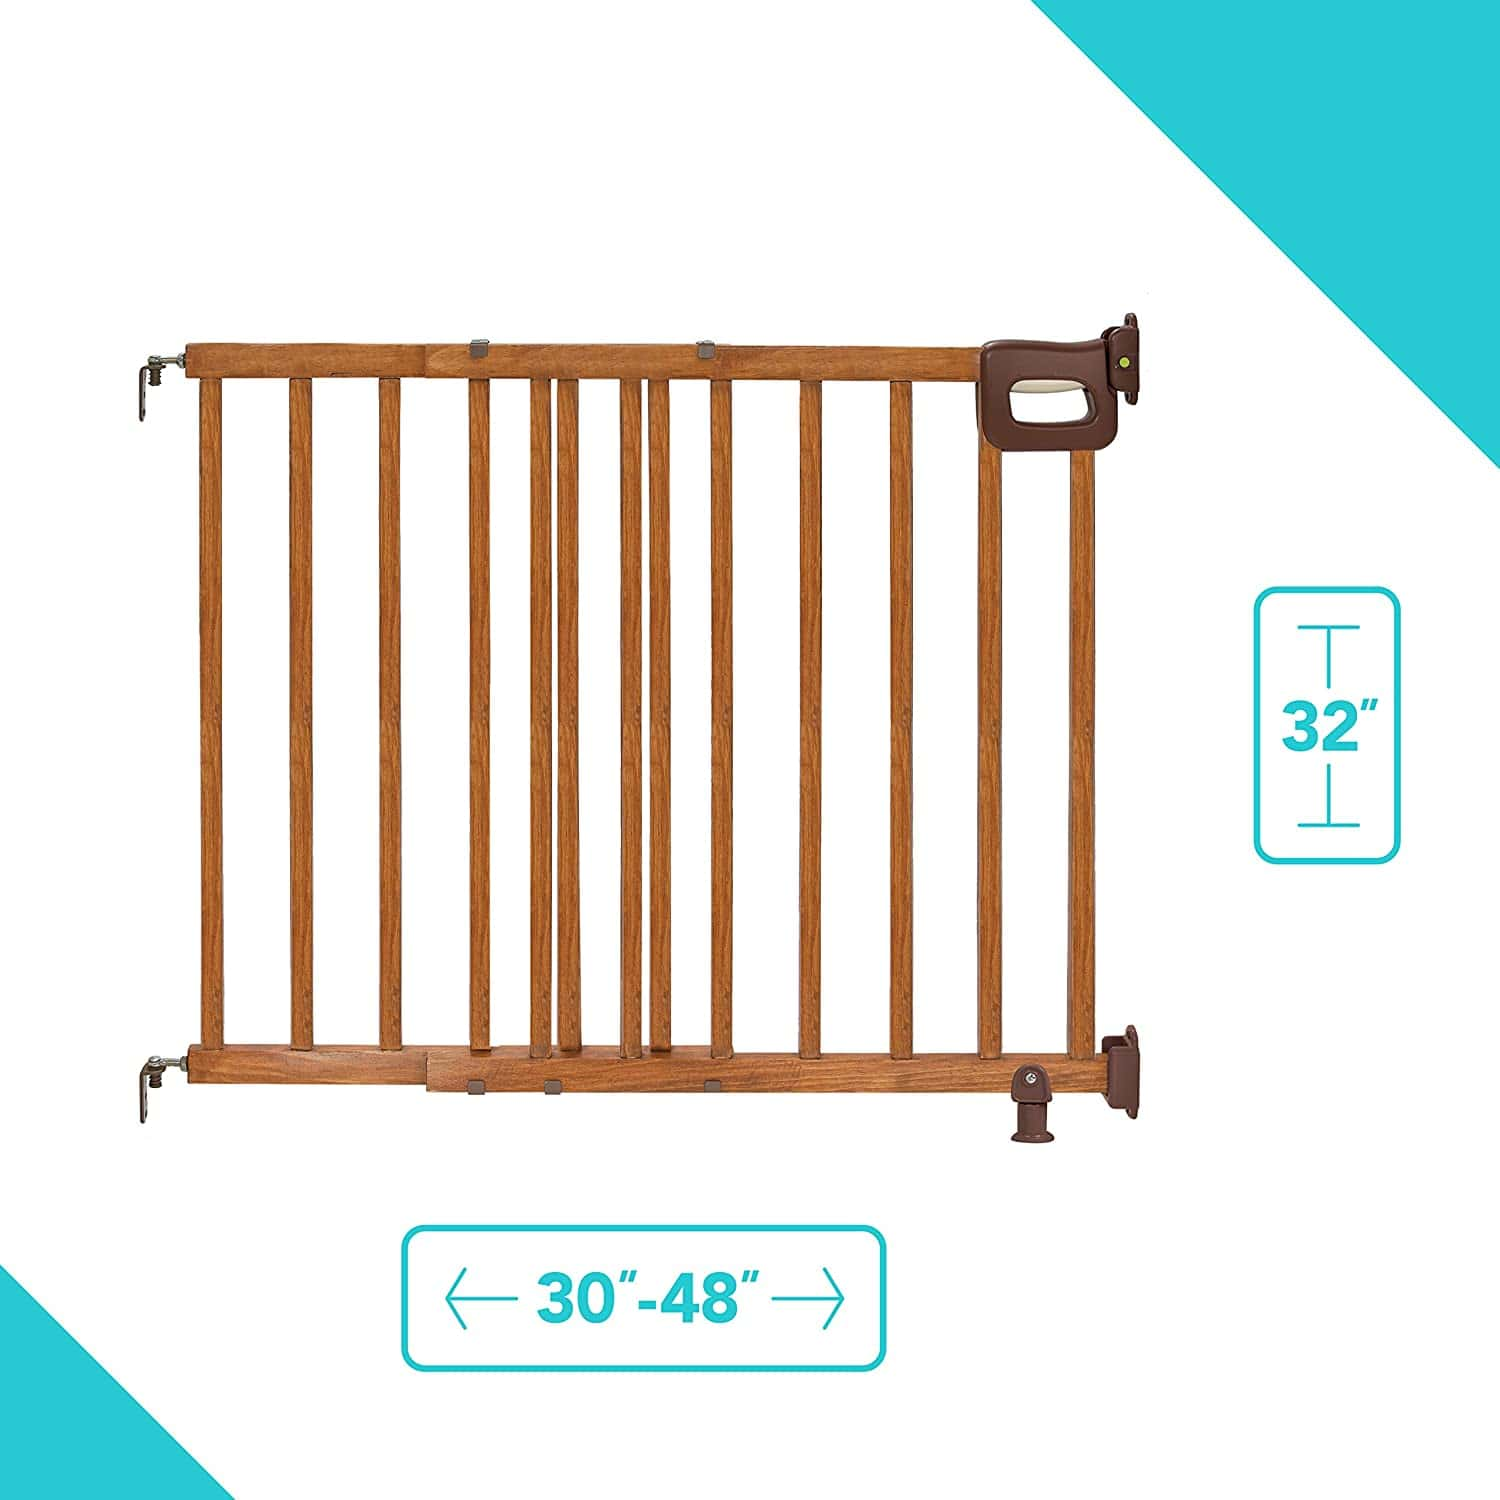 Summer Deluxe Wooden Baby Gate Product Image